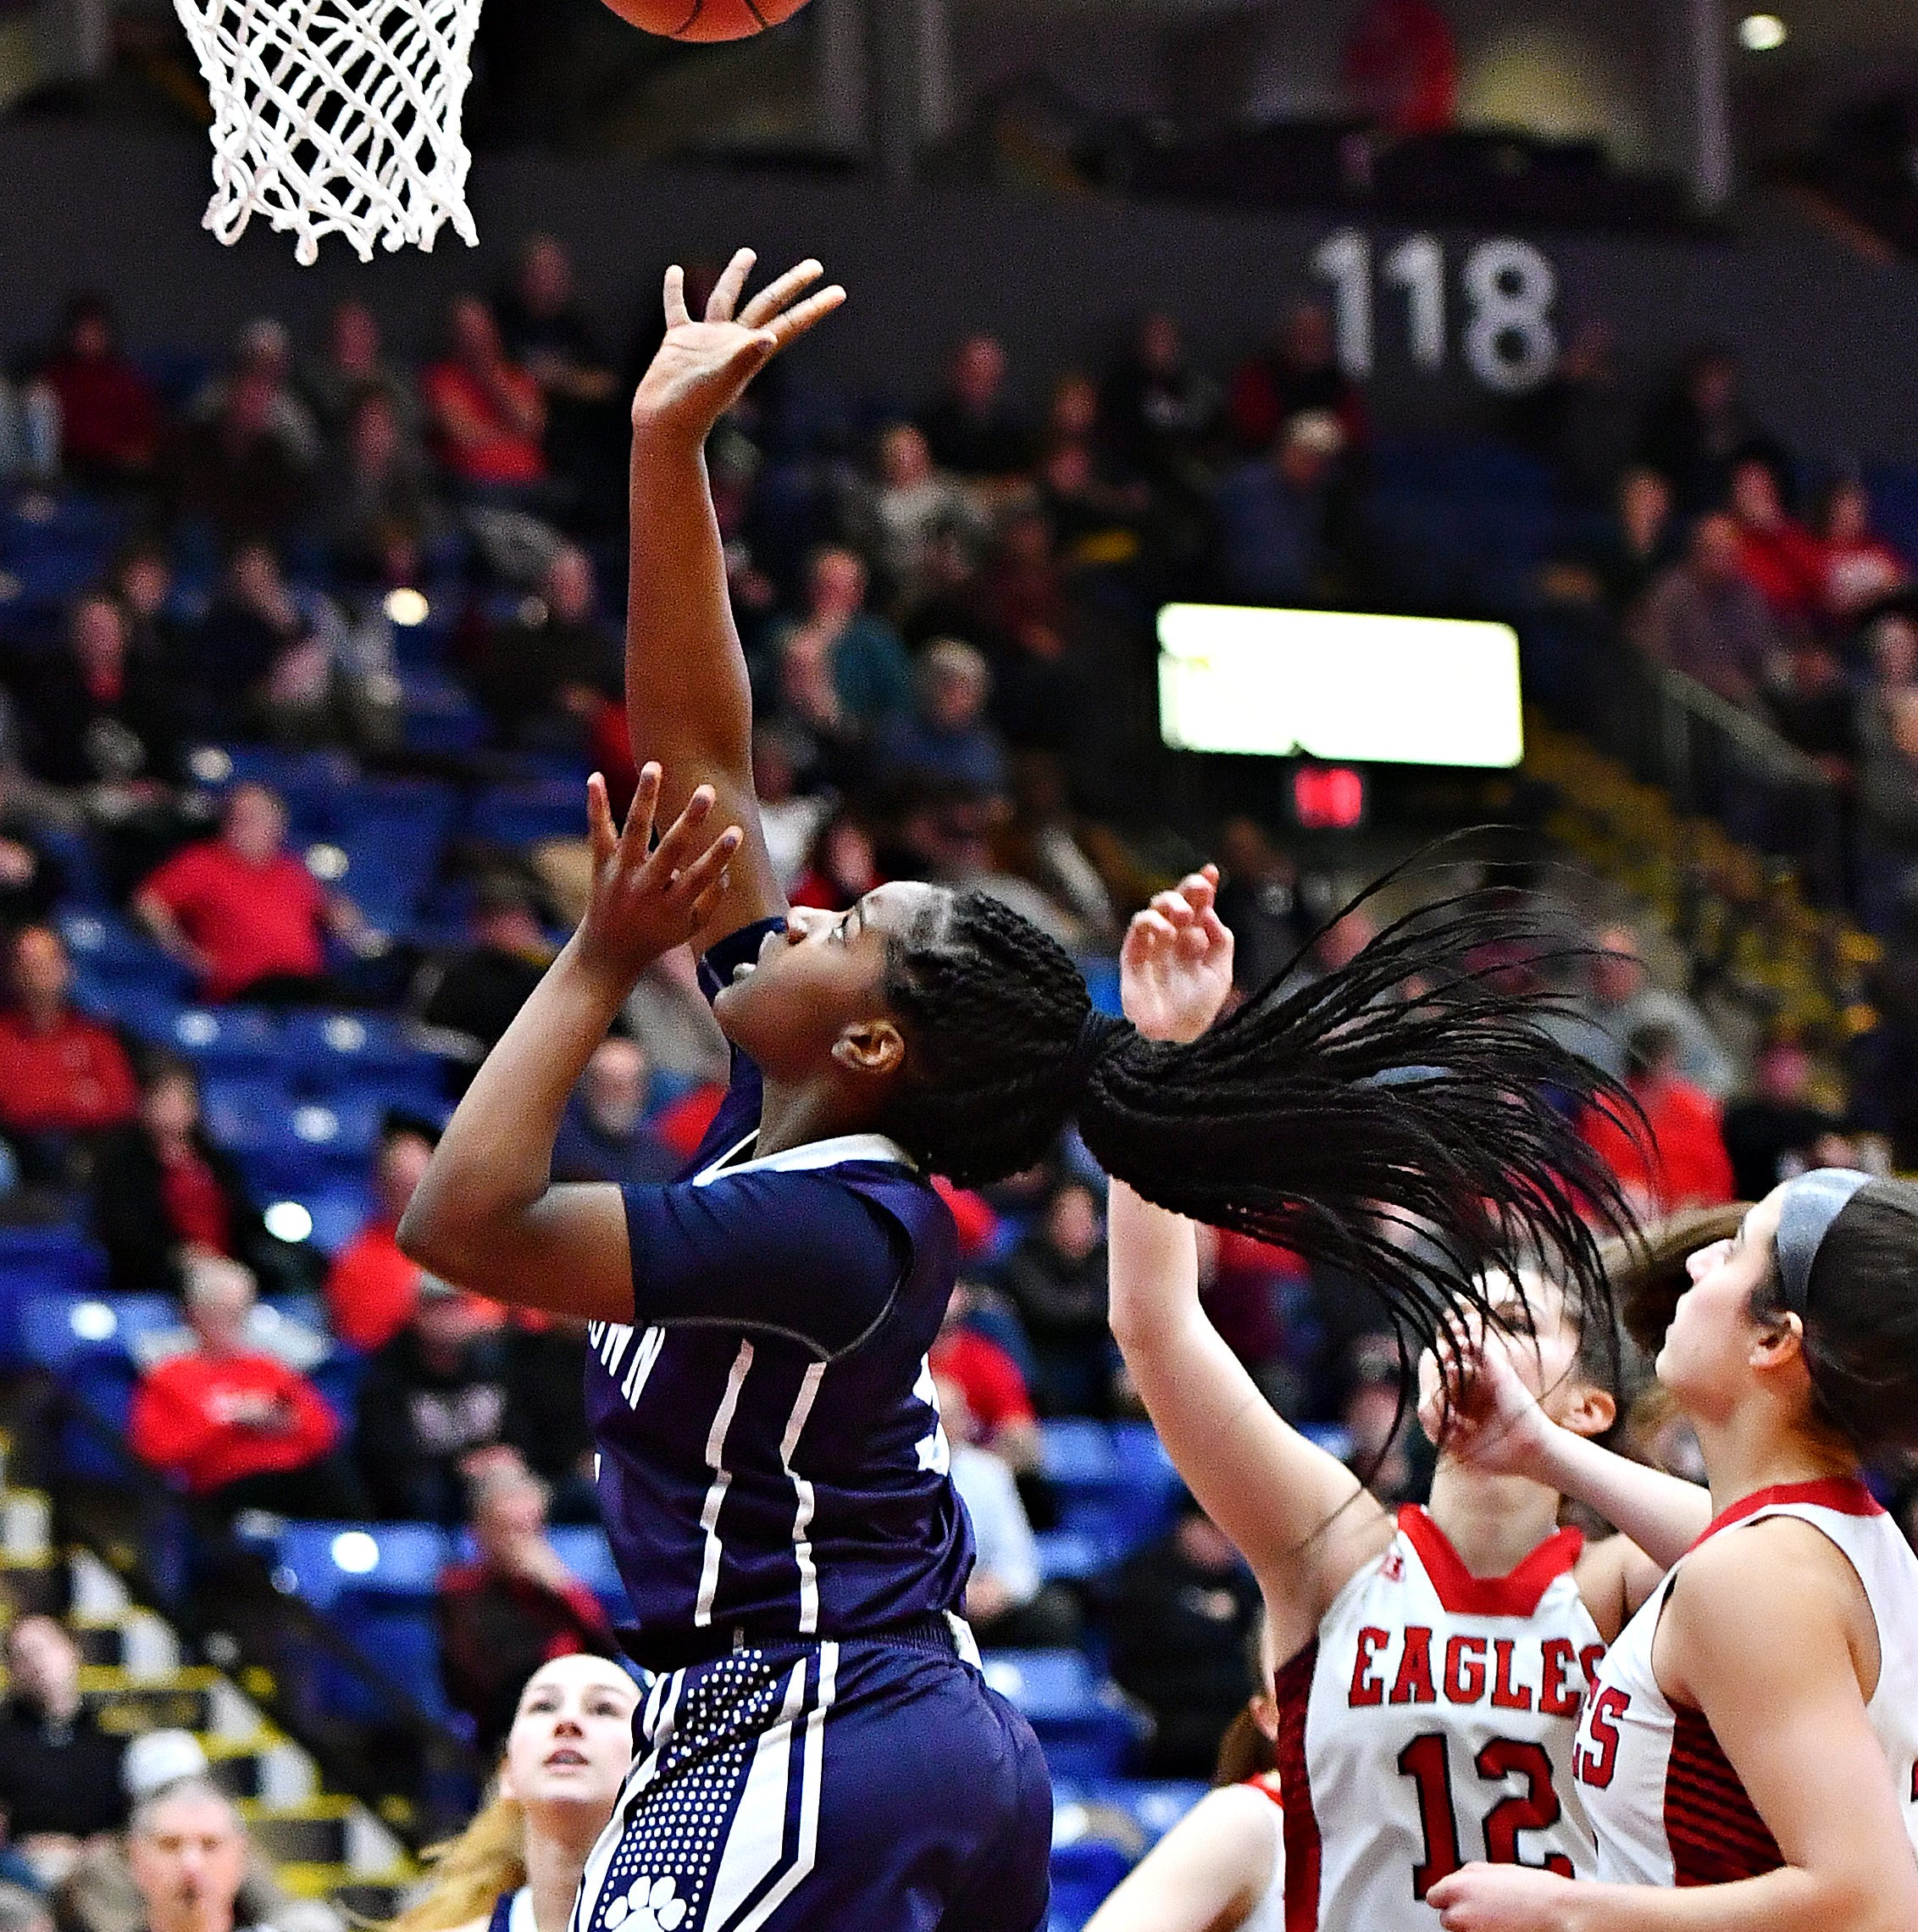 PIAA PAIRINGS: Seven girls' teams, three boys' squads from Y-A League to compete in state playoffs